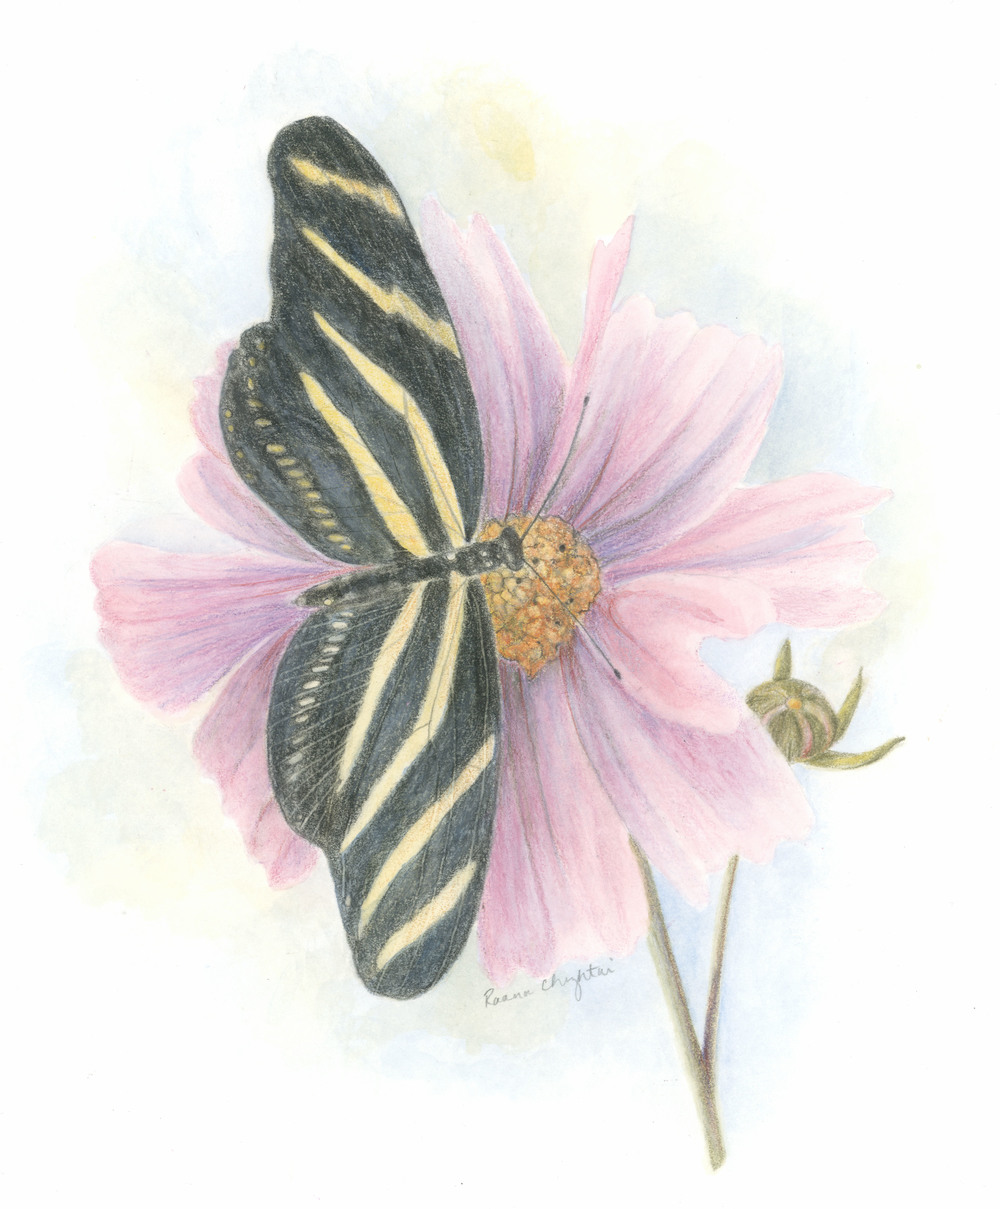 Zebra Butterfly on a Cosmos